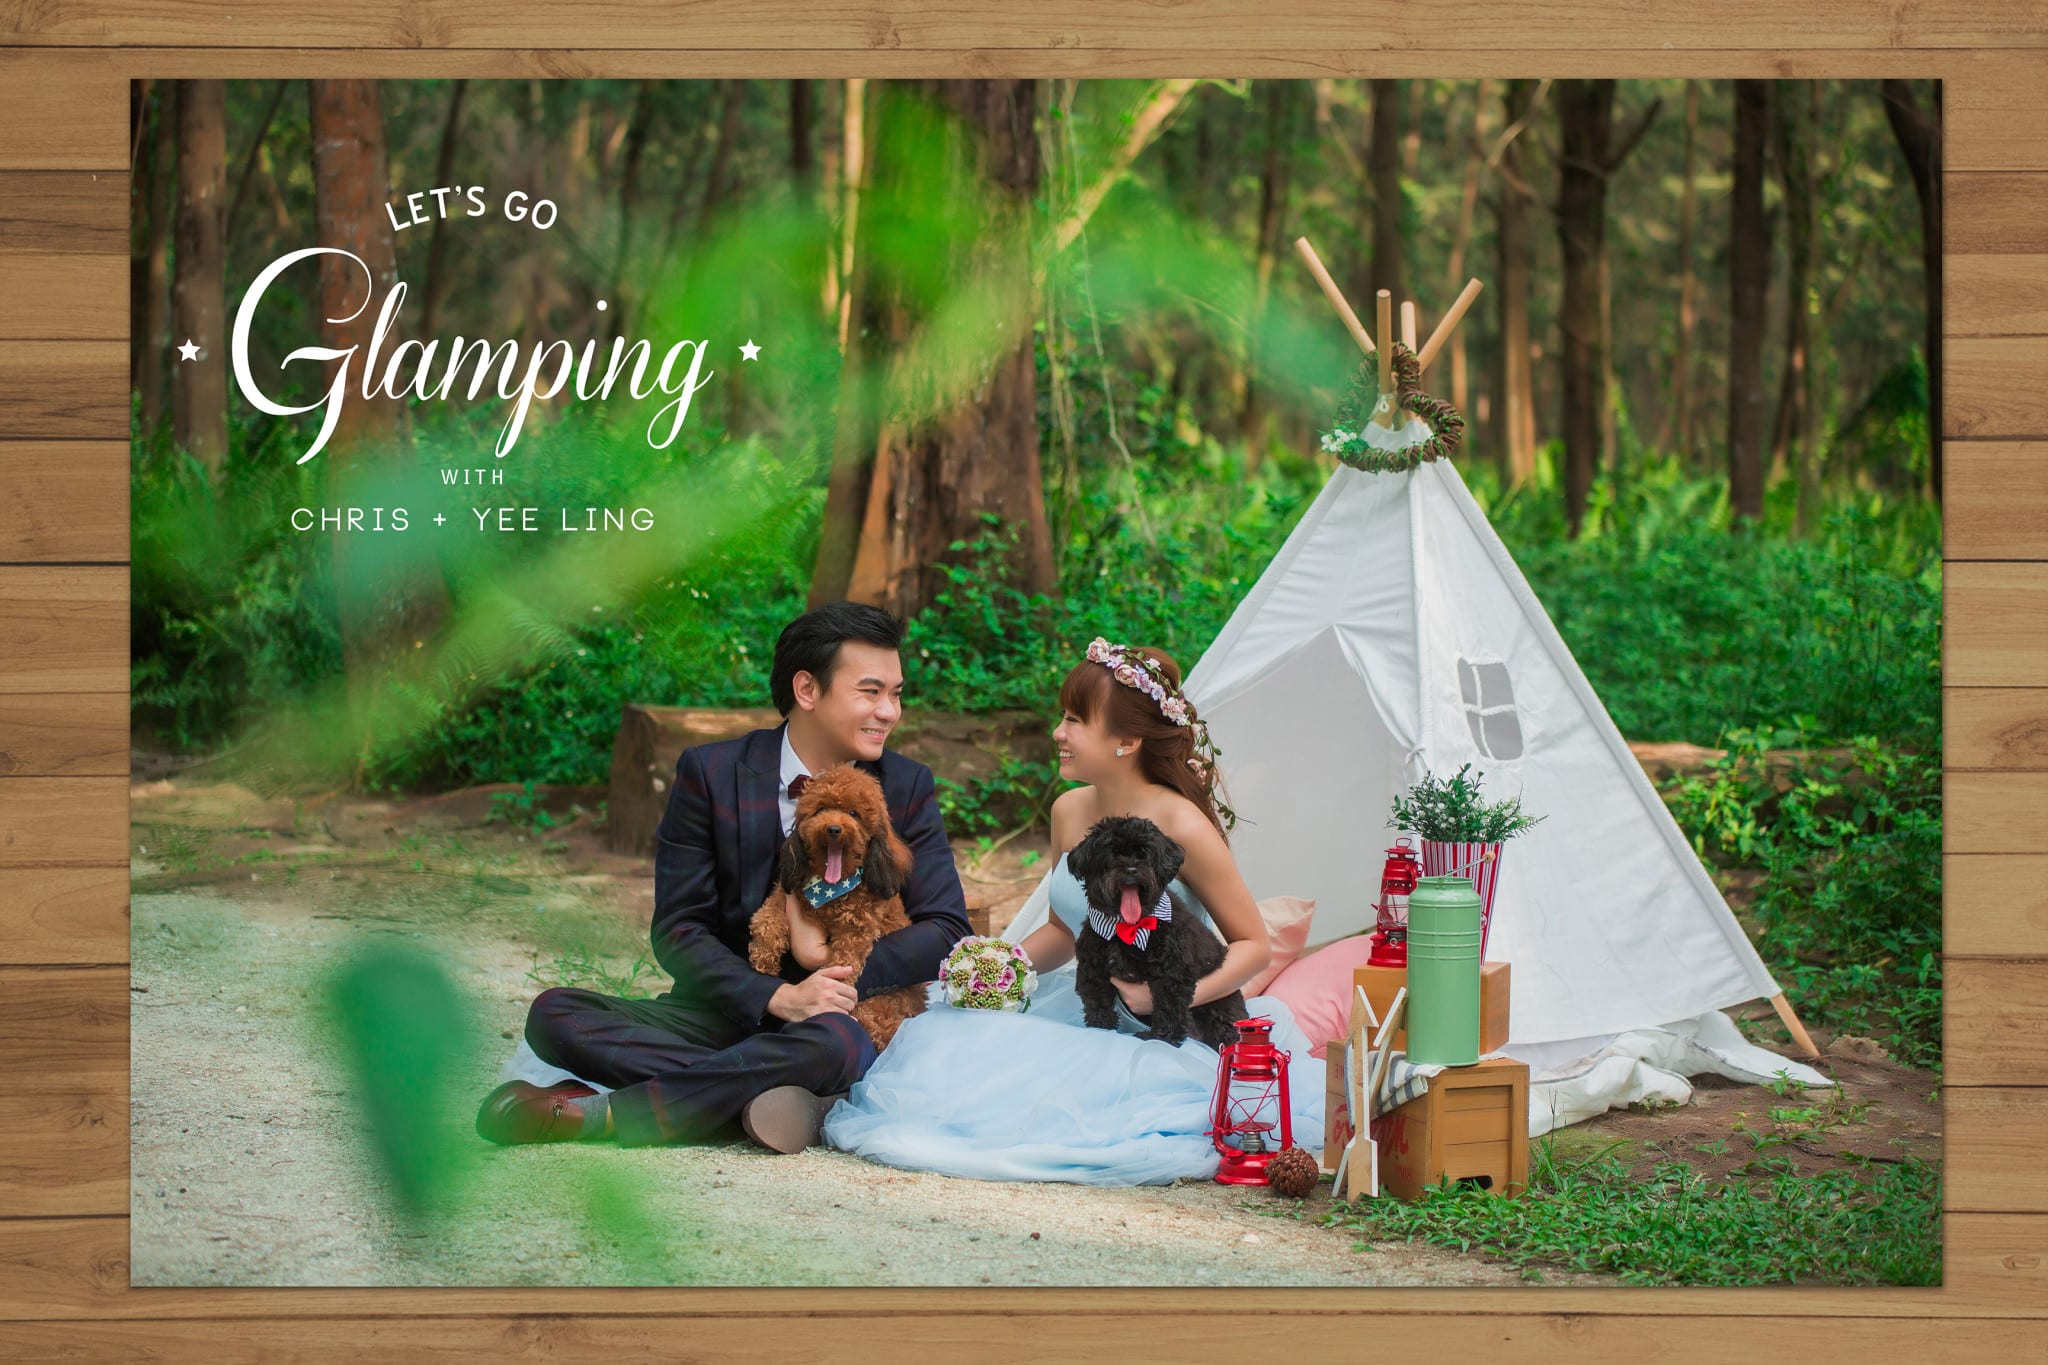 Singapore Pre-wedding Photoshoot – Intimate Glamping